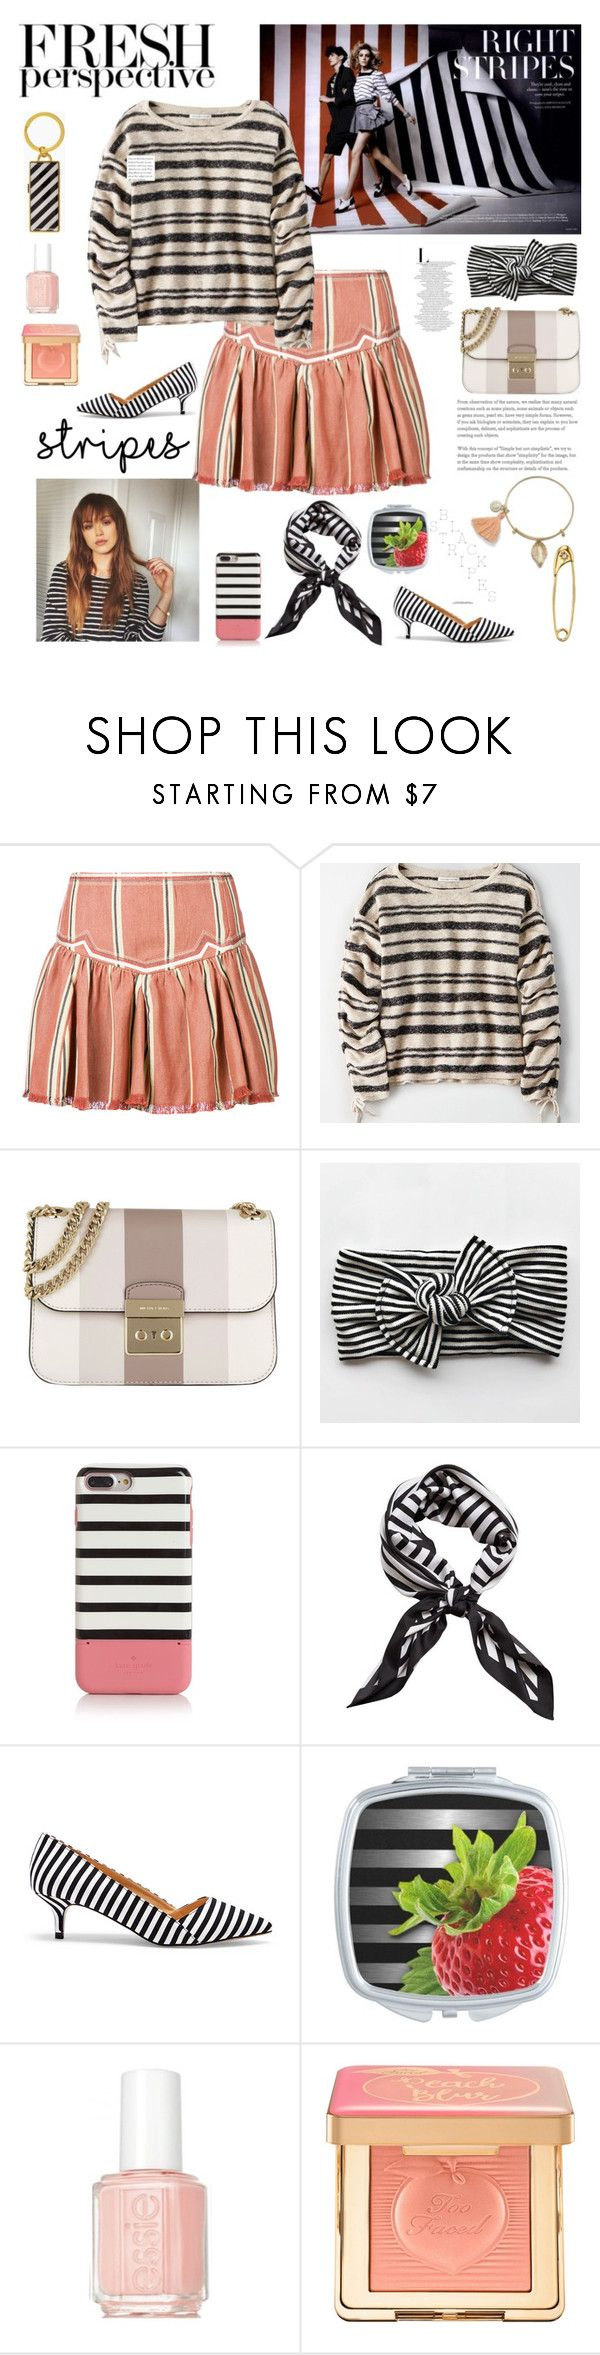 """Senza titolo #6949"" by waikiki24 ❤ liked on Polyvore featuring Étoile Isabel Marant, American Eagle Outfitters, MICHAEL Michael Kors, Kate Spade, MANGO, Sole Society, Essie, Too Faced Cosmetics, Diamond Star and stripesonstripes"